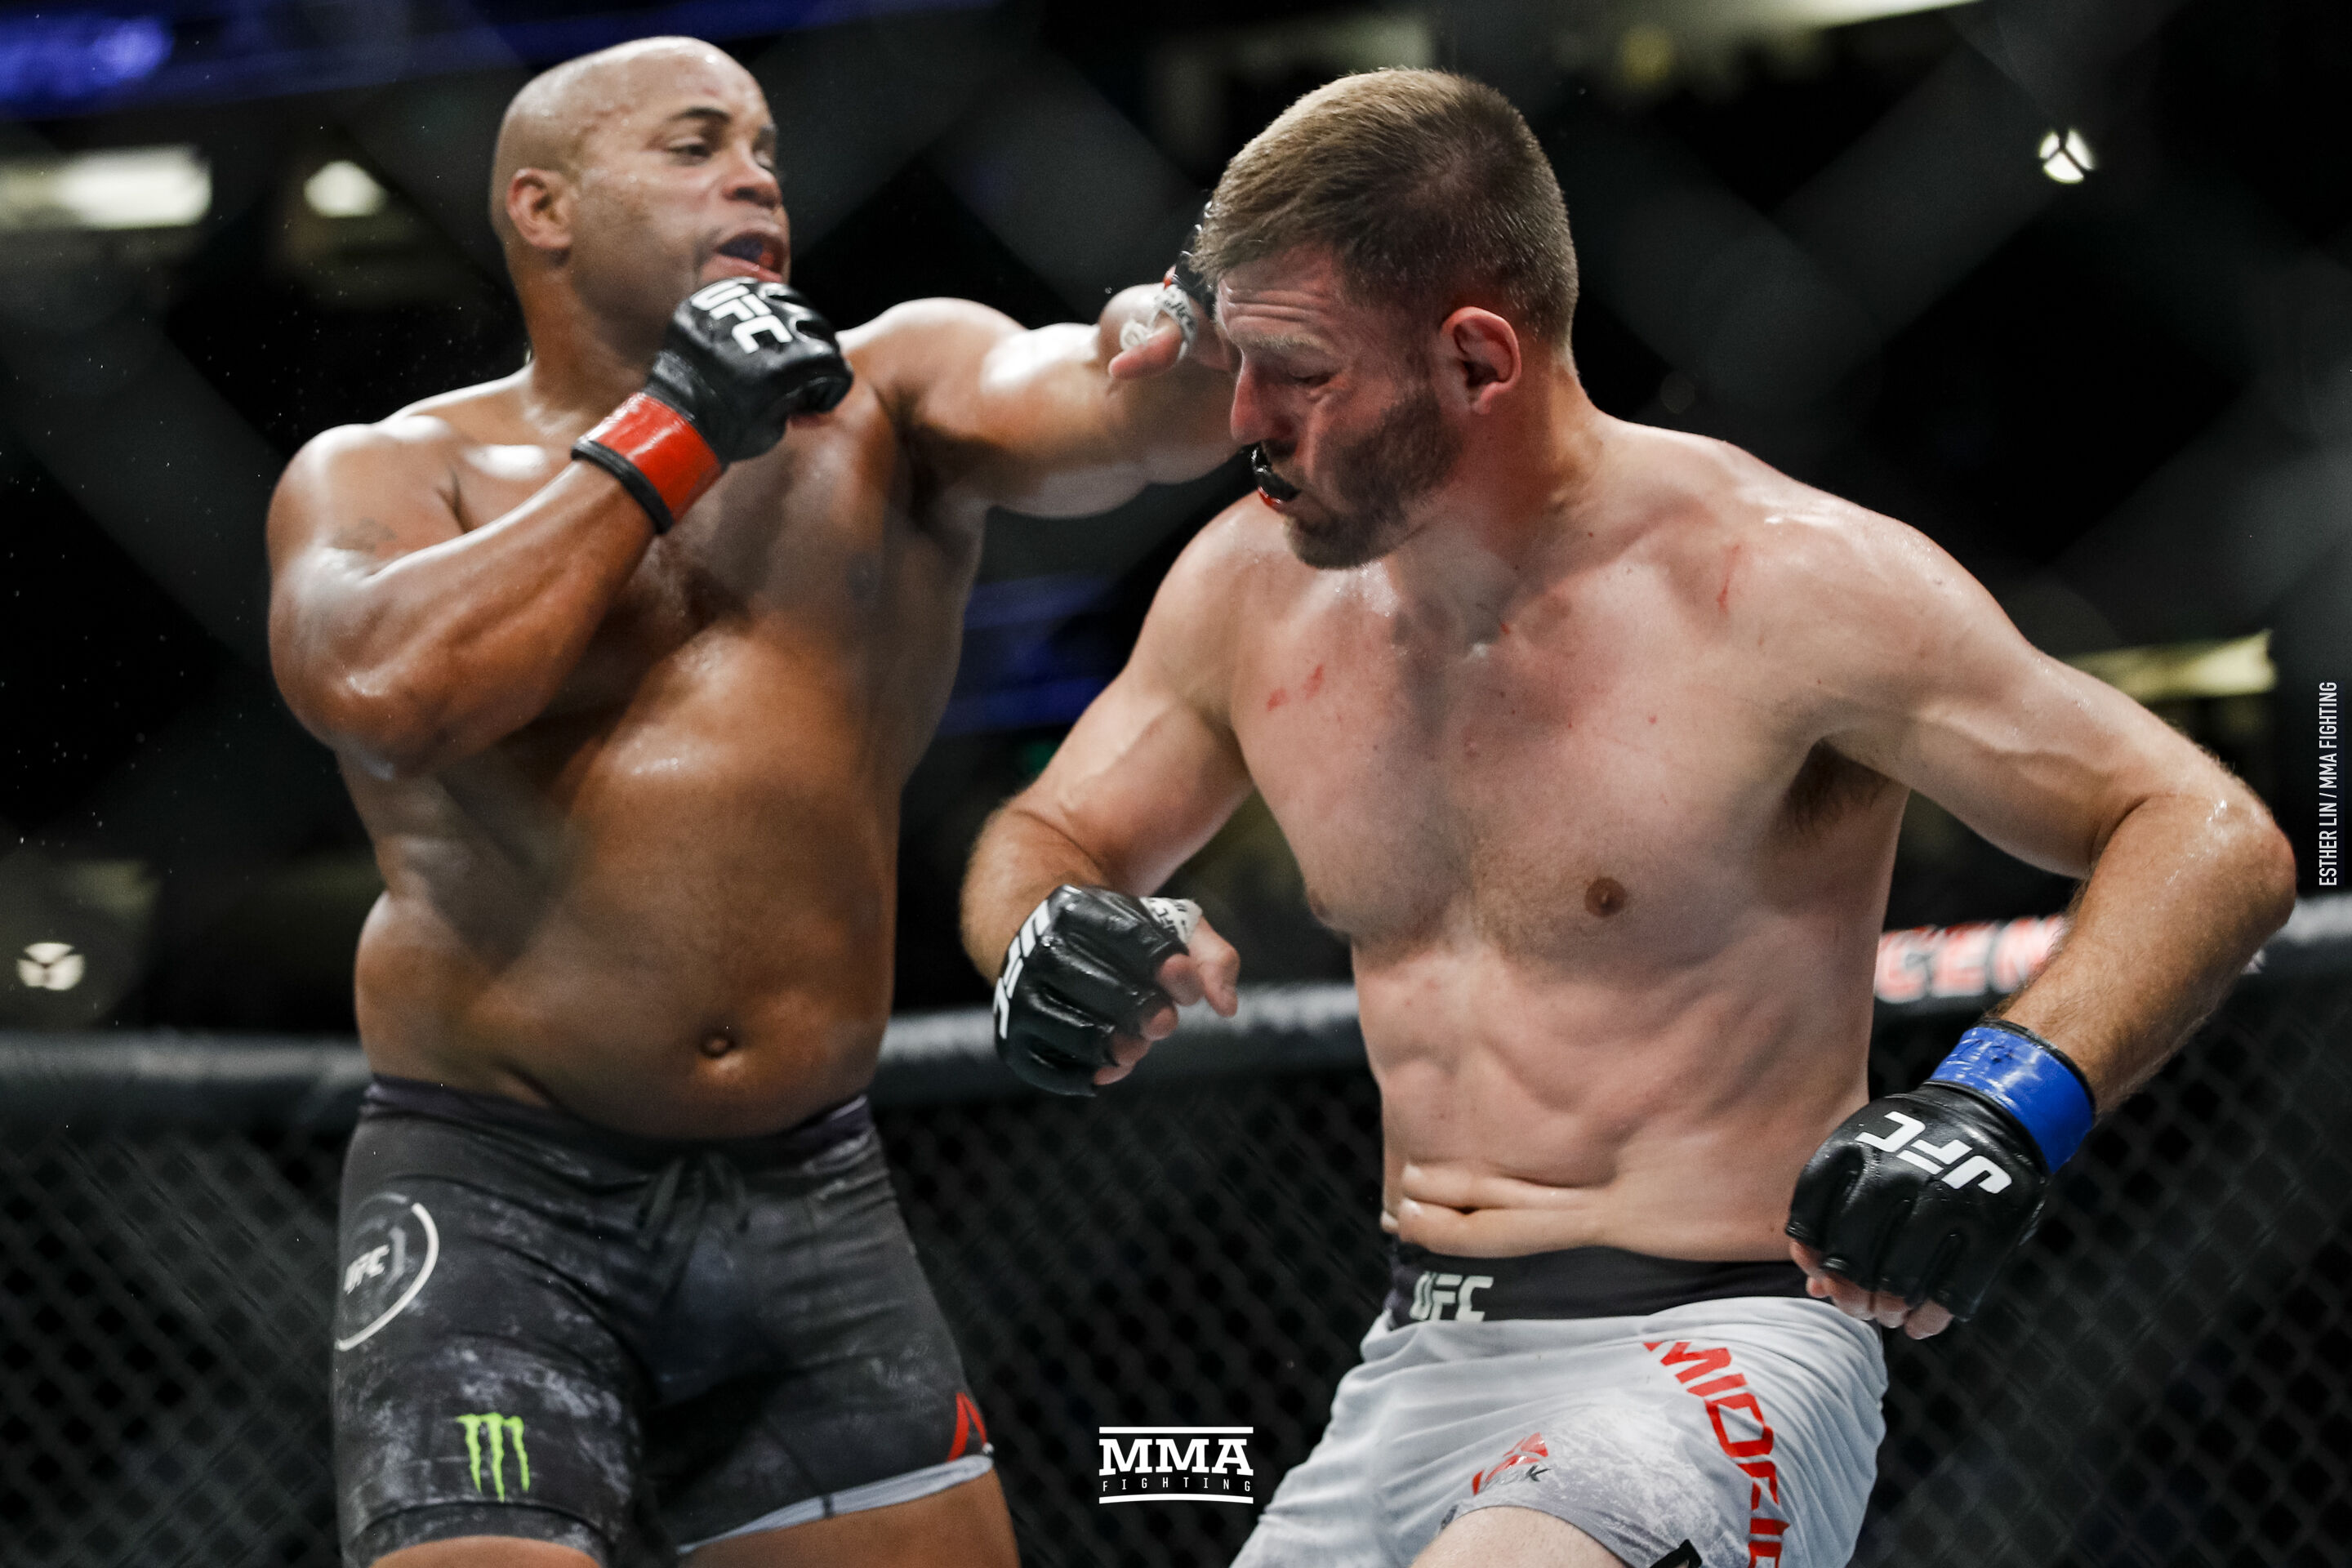 Daniel Cormier and Stipe Miocic